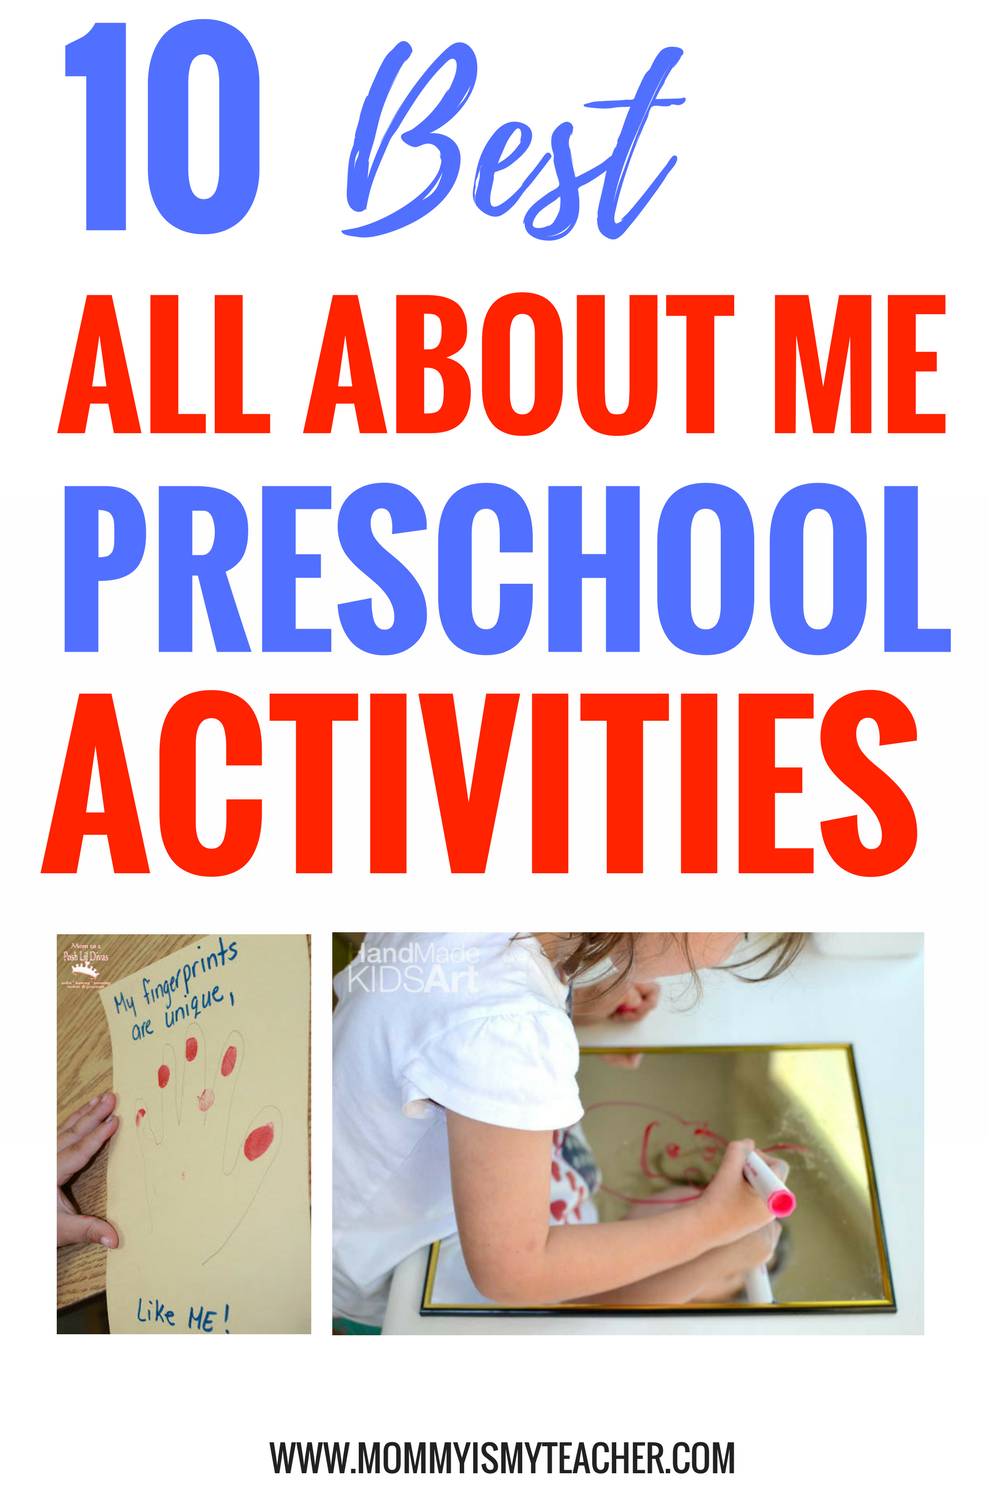 graphic regarding All About Me Printable Preschool identified as 10 Enjoyment Preschool All Above Me Functions Mommy is My Instructor